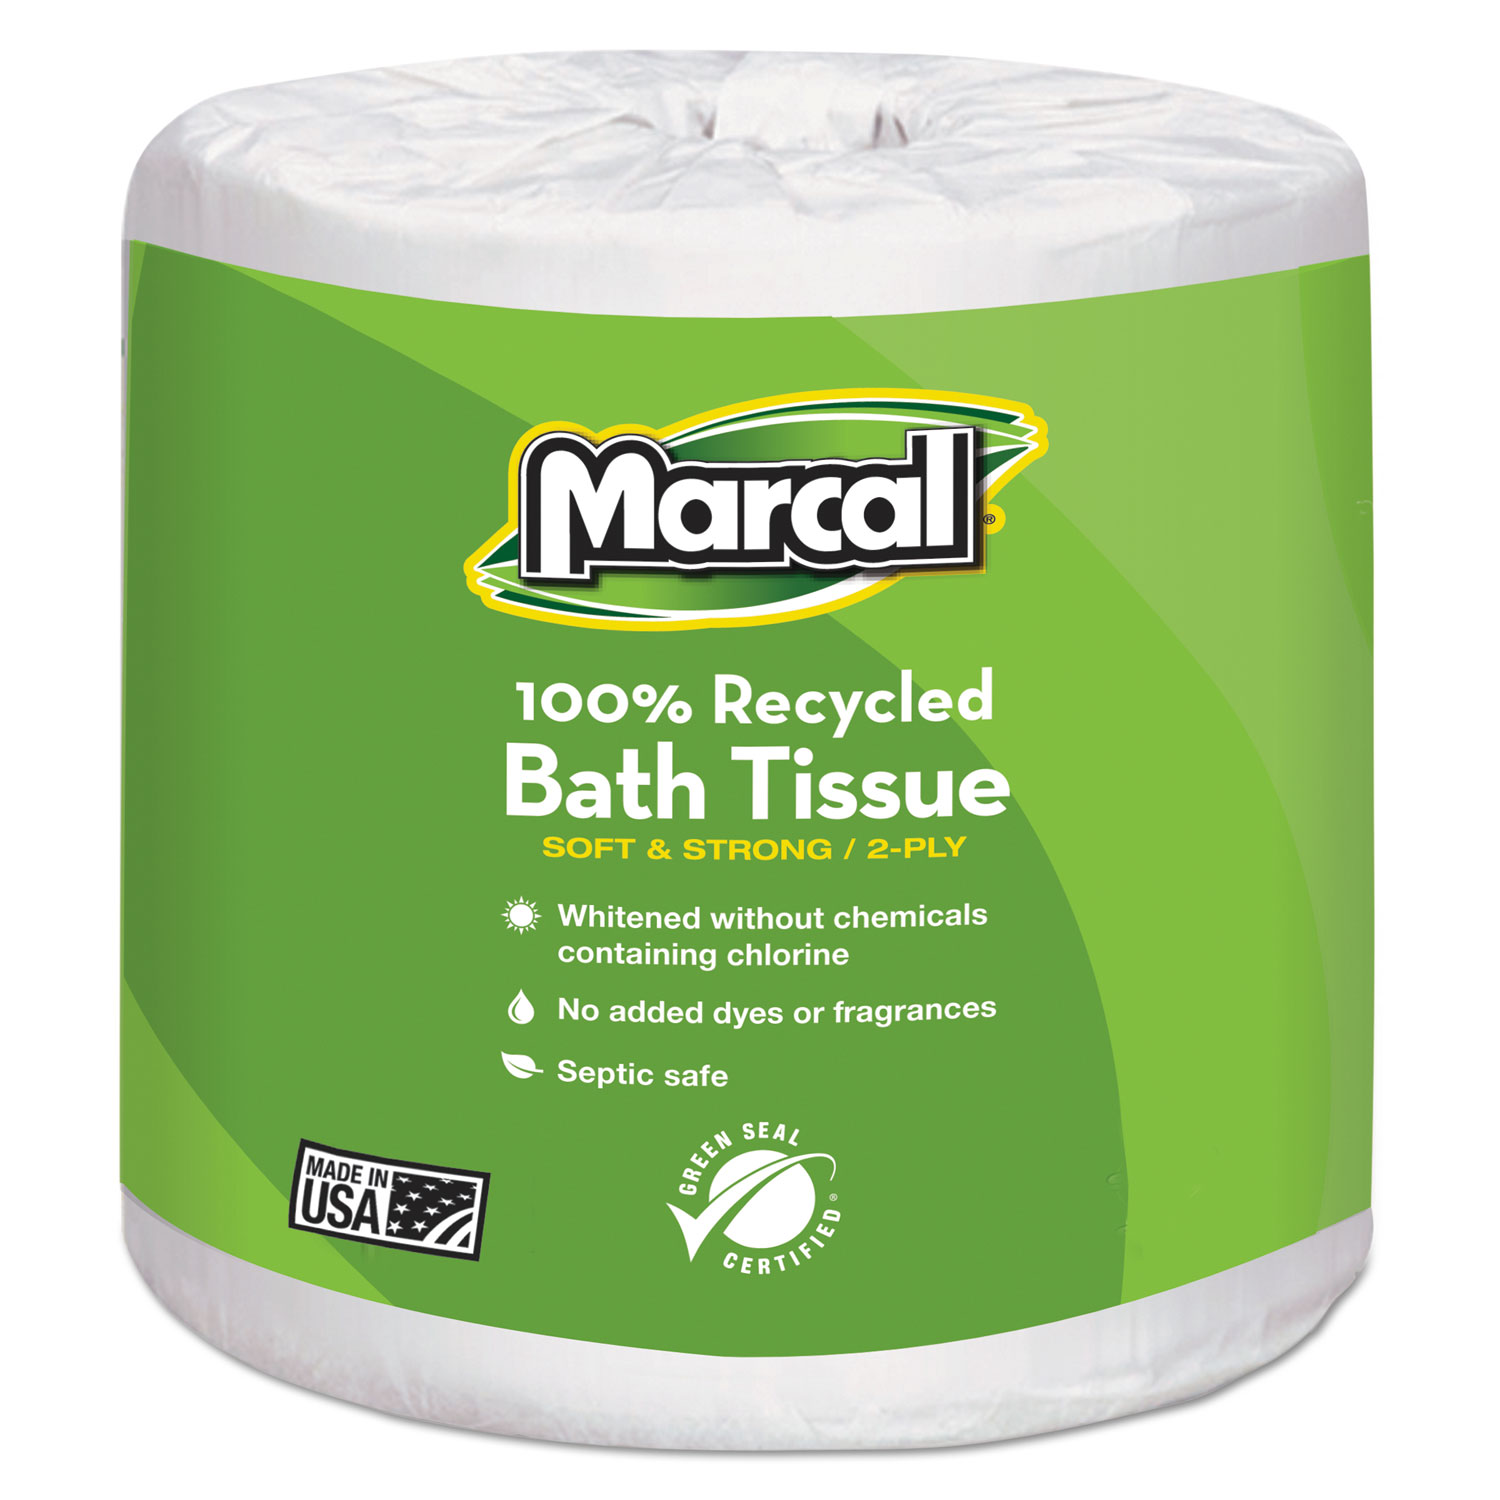 100% Recycled Two-Ply Bath Tissue, Septic Safe, White, 330 Sheets/Roll, 48 Rolls/Carton